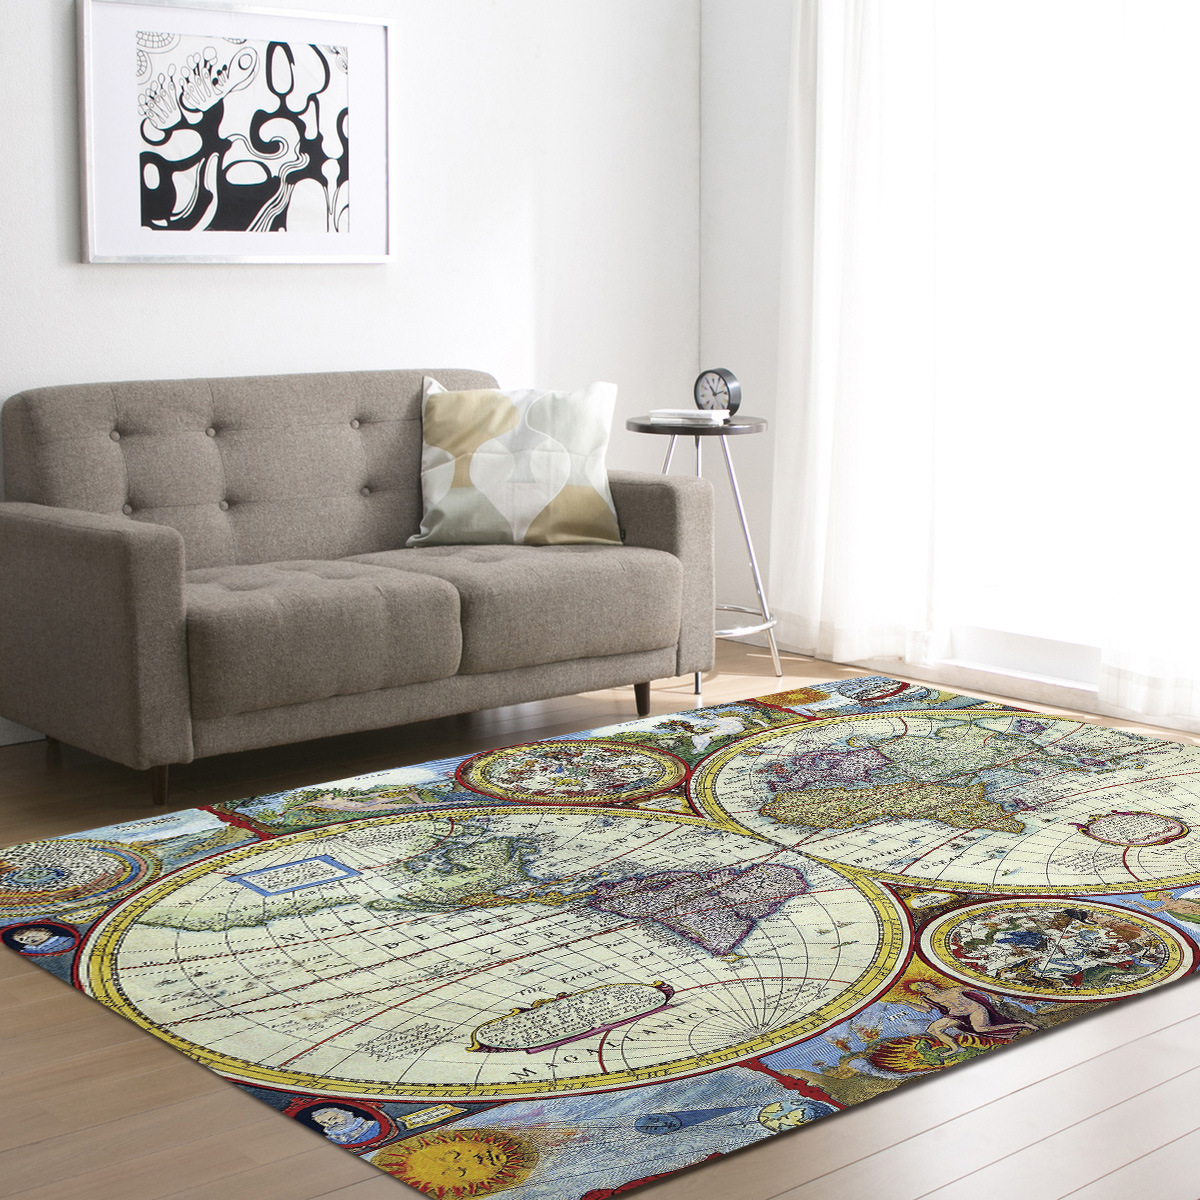 Zeegle World Map Floor Mat Carpets For Living Room Anti Slip Office